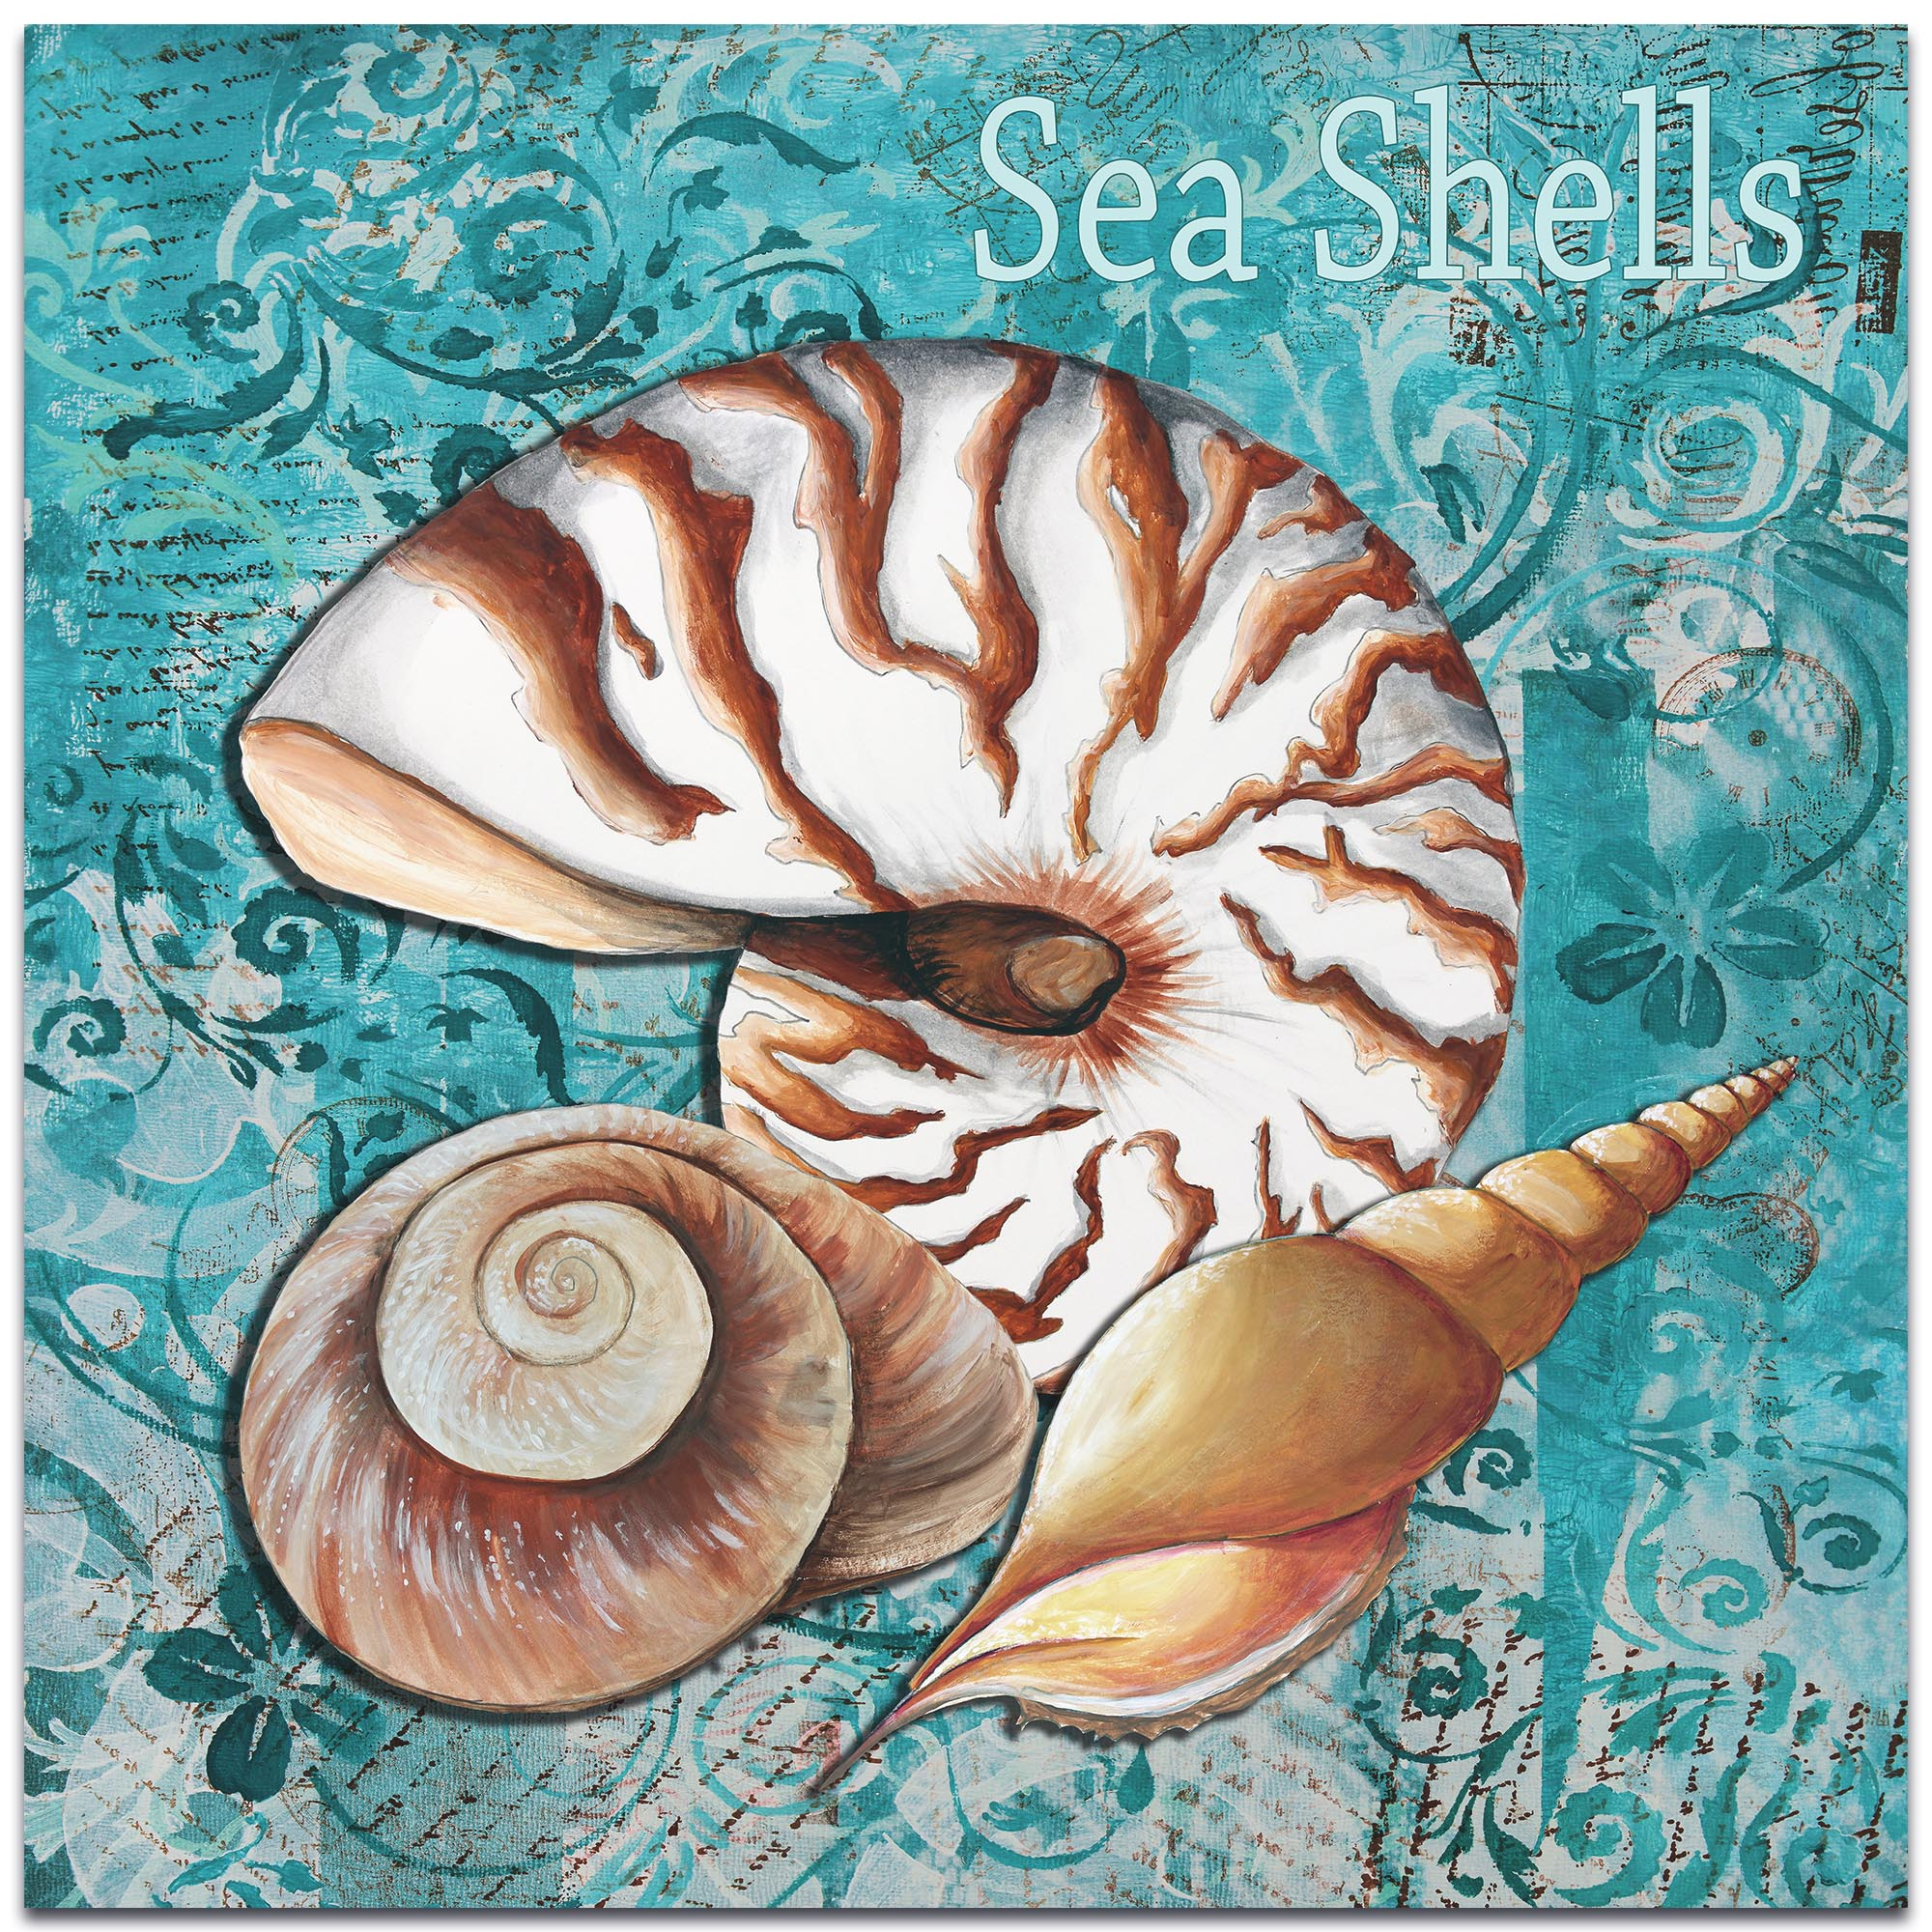 Beach Decor 'Sea Shells' - Coastal Bathroom Art on Metal or Acrylic